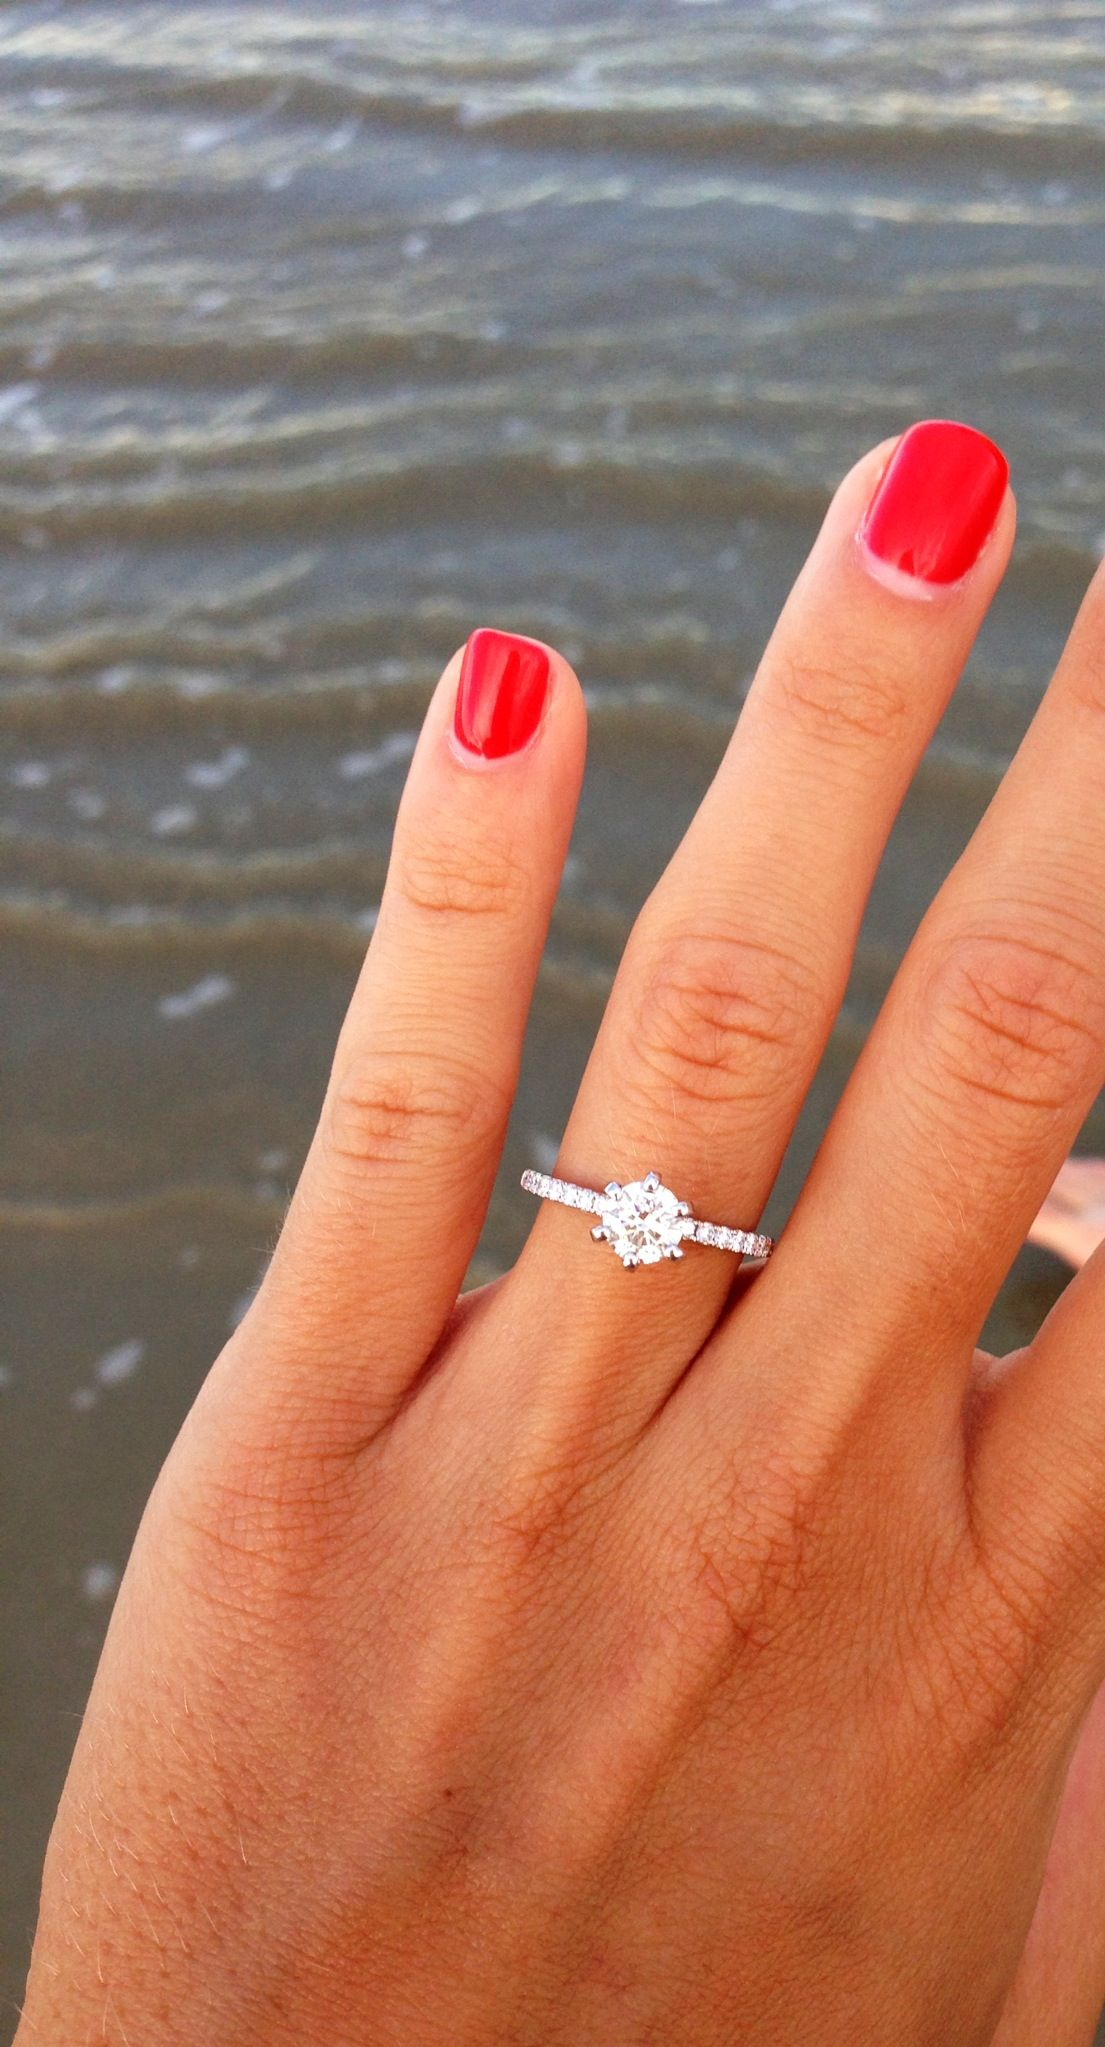 Round solitaire diamond with a thin pave diamond band | When I say I ...